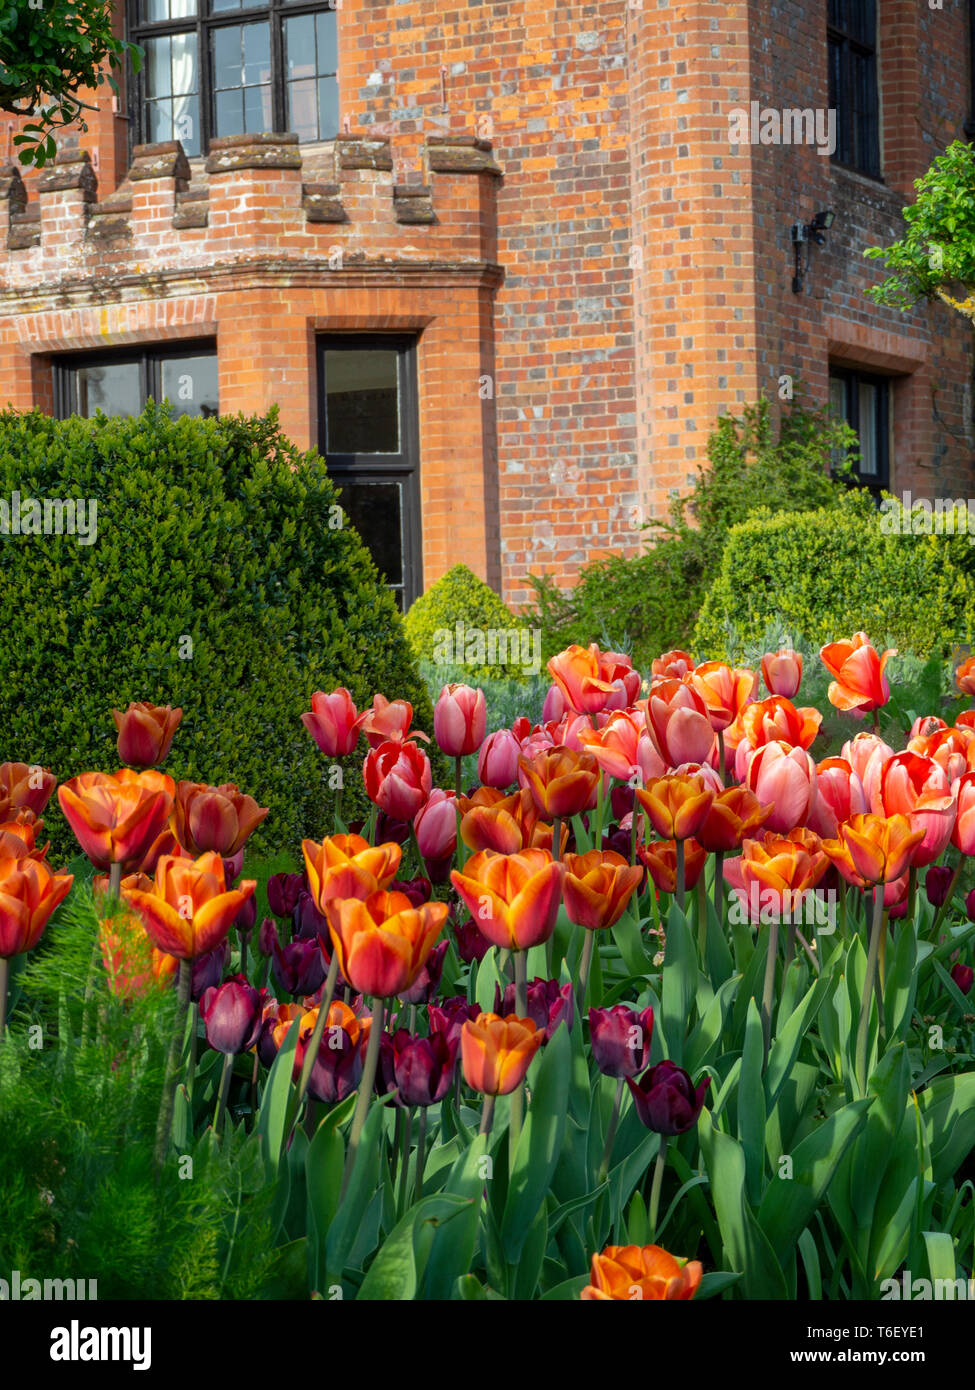 Chenies Manor House and Gardens in April showing colourful tulip borders. Portrait aspect of Chenies Manor house in the sun edged with tulip borders. - Stock Image